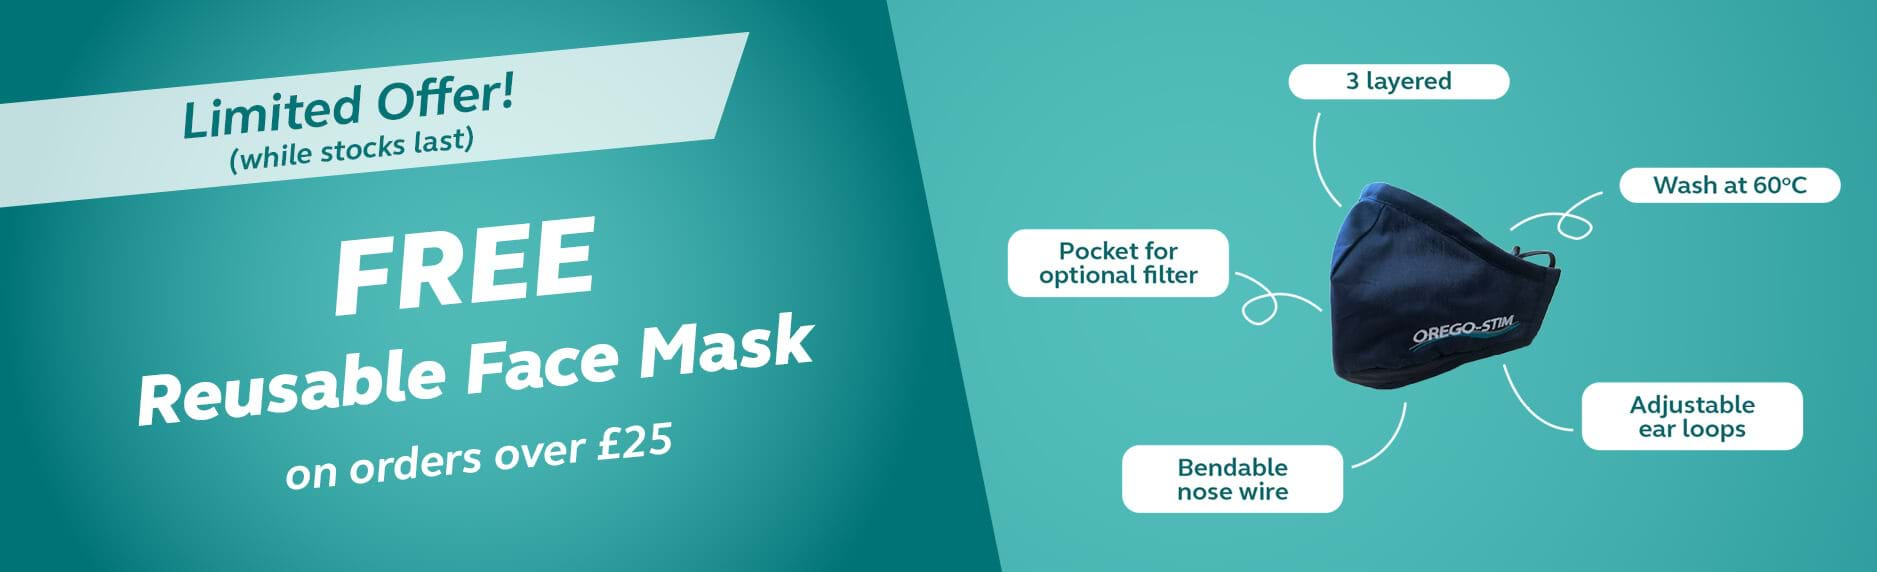 Free reusable mask on orders over £25